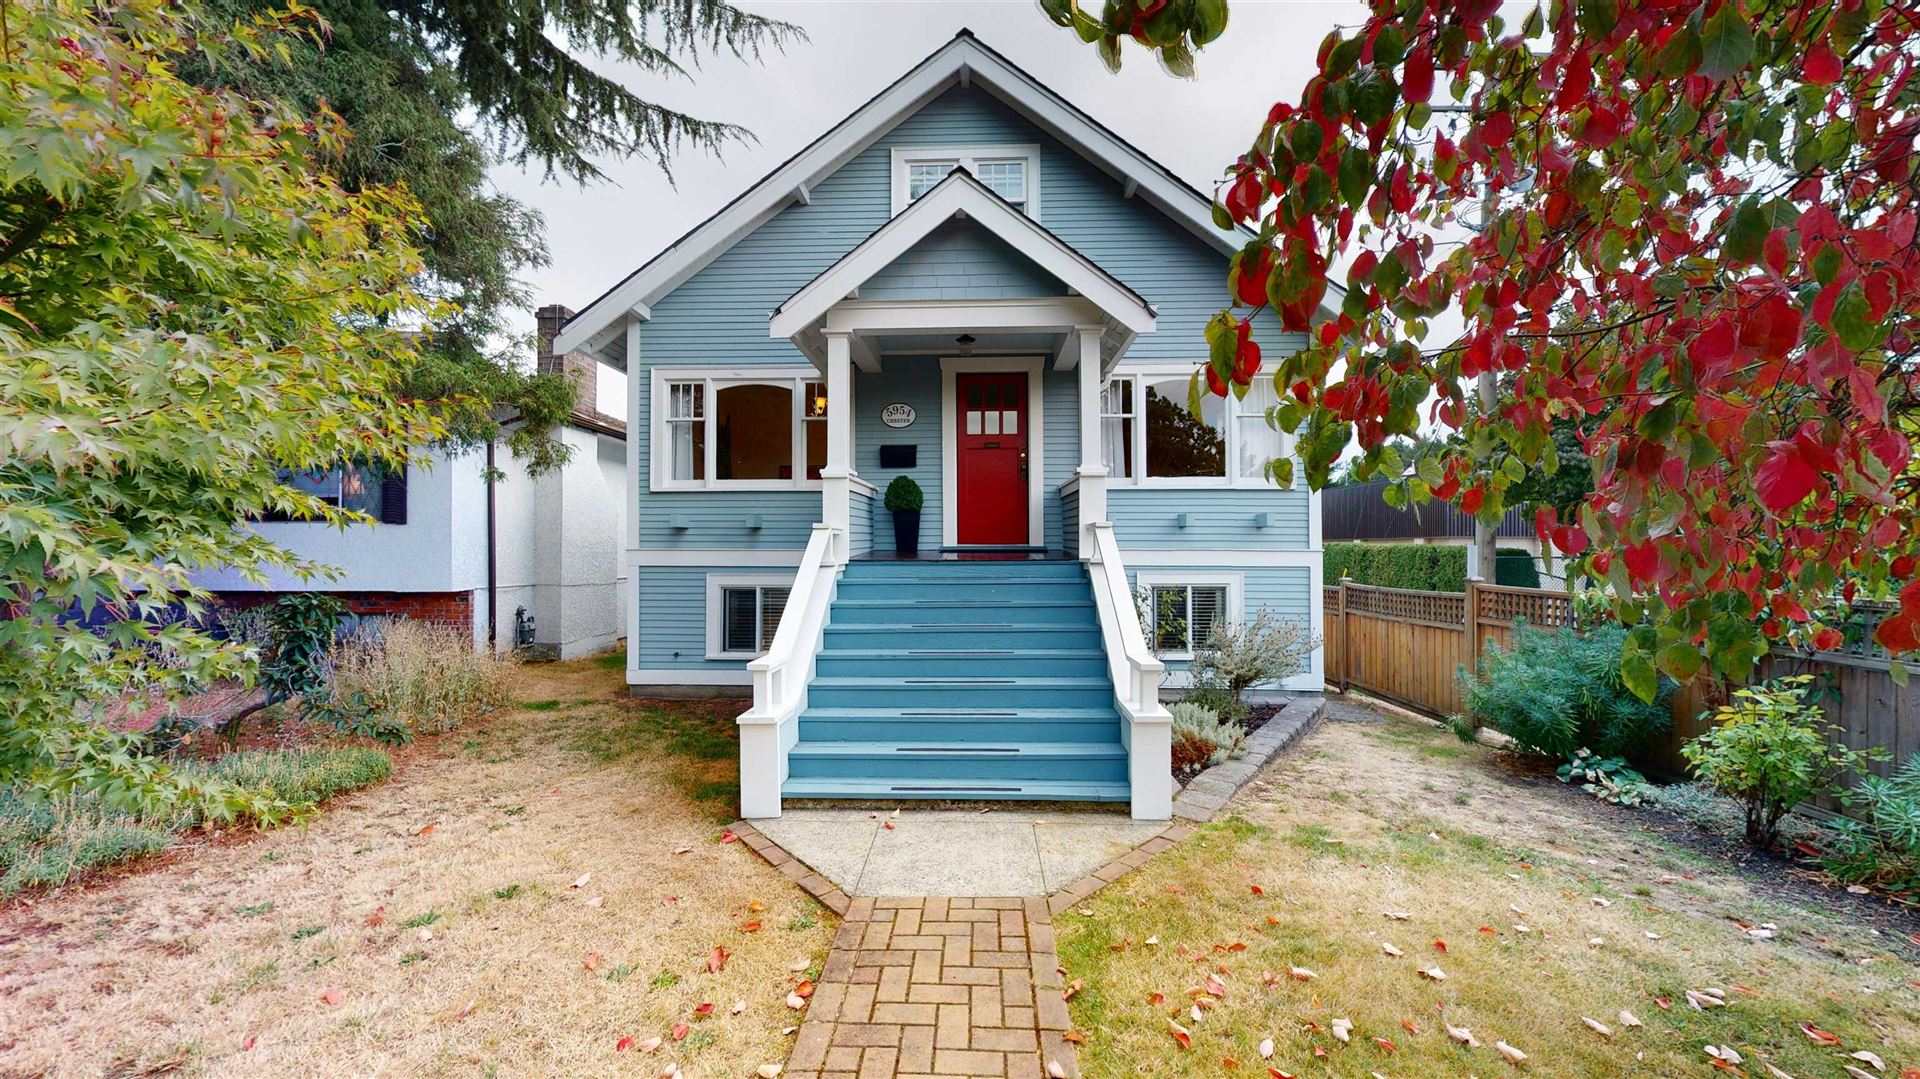 Photo of 5954 CHESTER STREET, Vancouver, BC V5W 3B6 (MLS # R2620423)